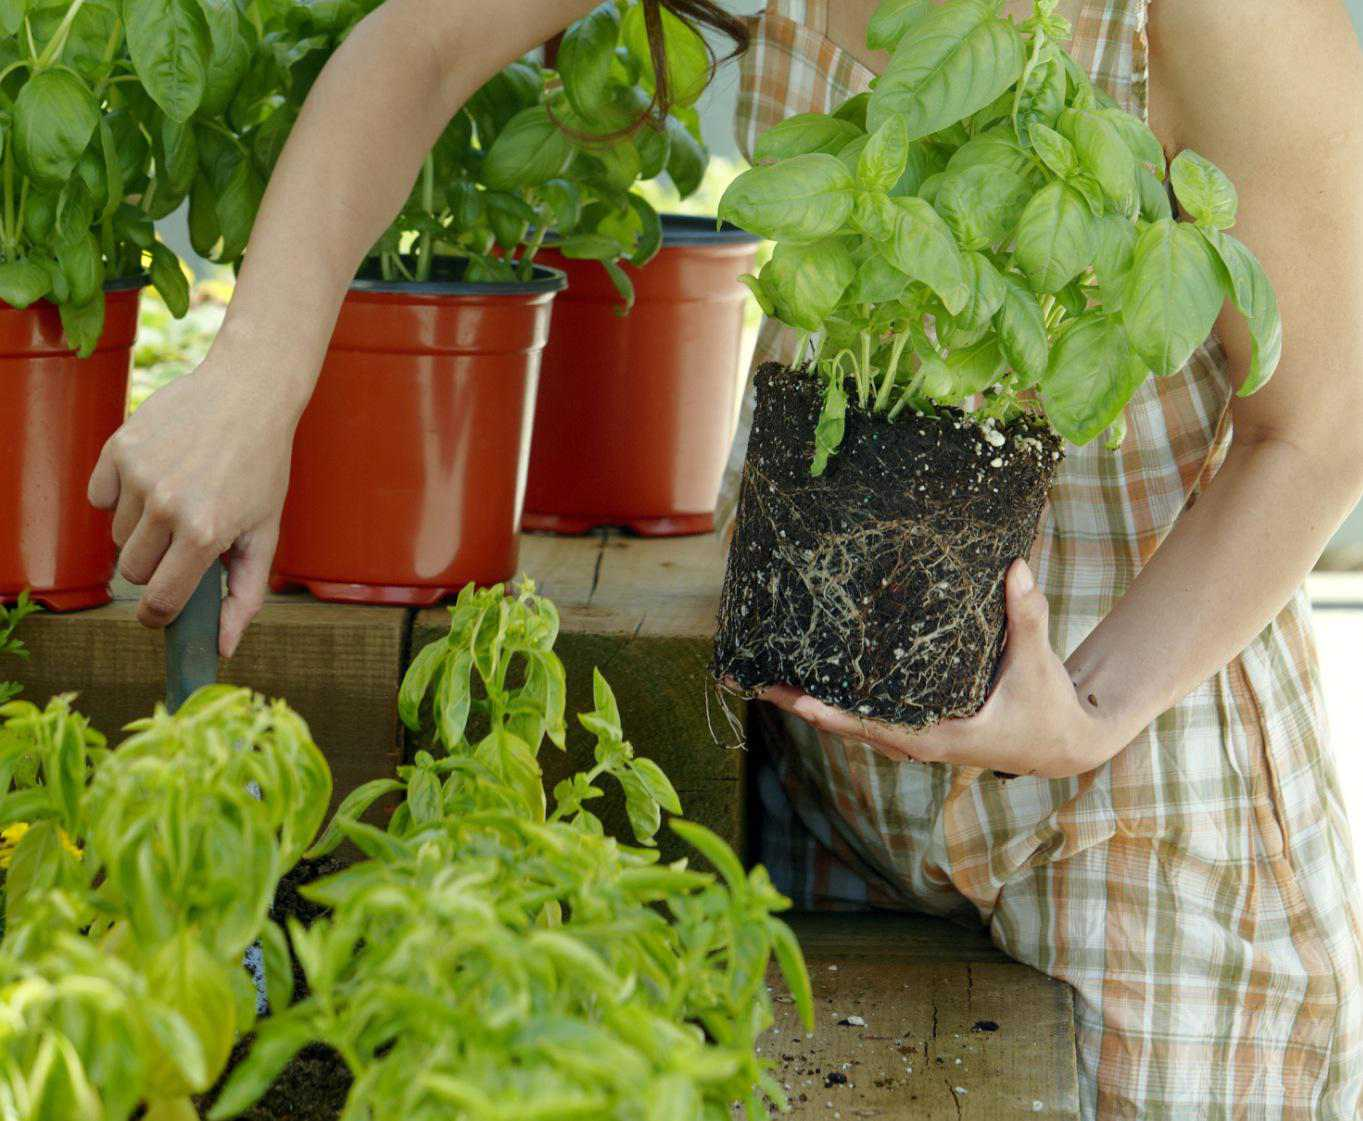 Woman plants Basil in garden